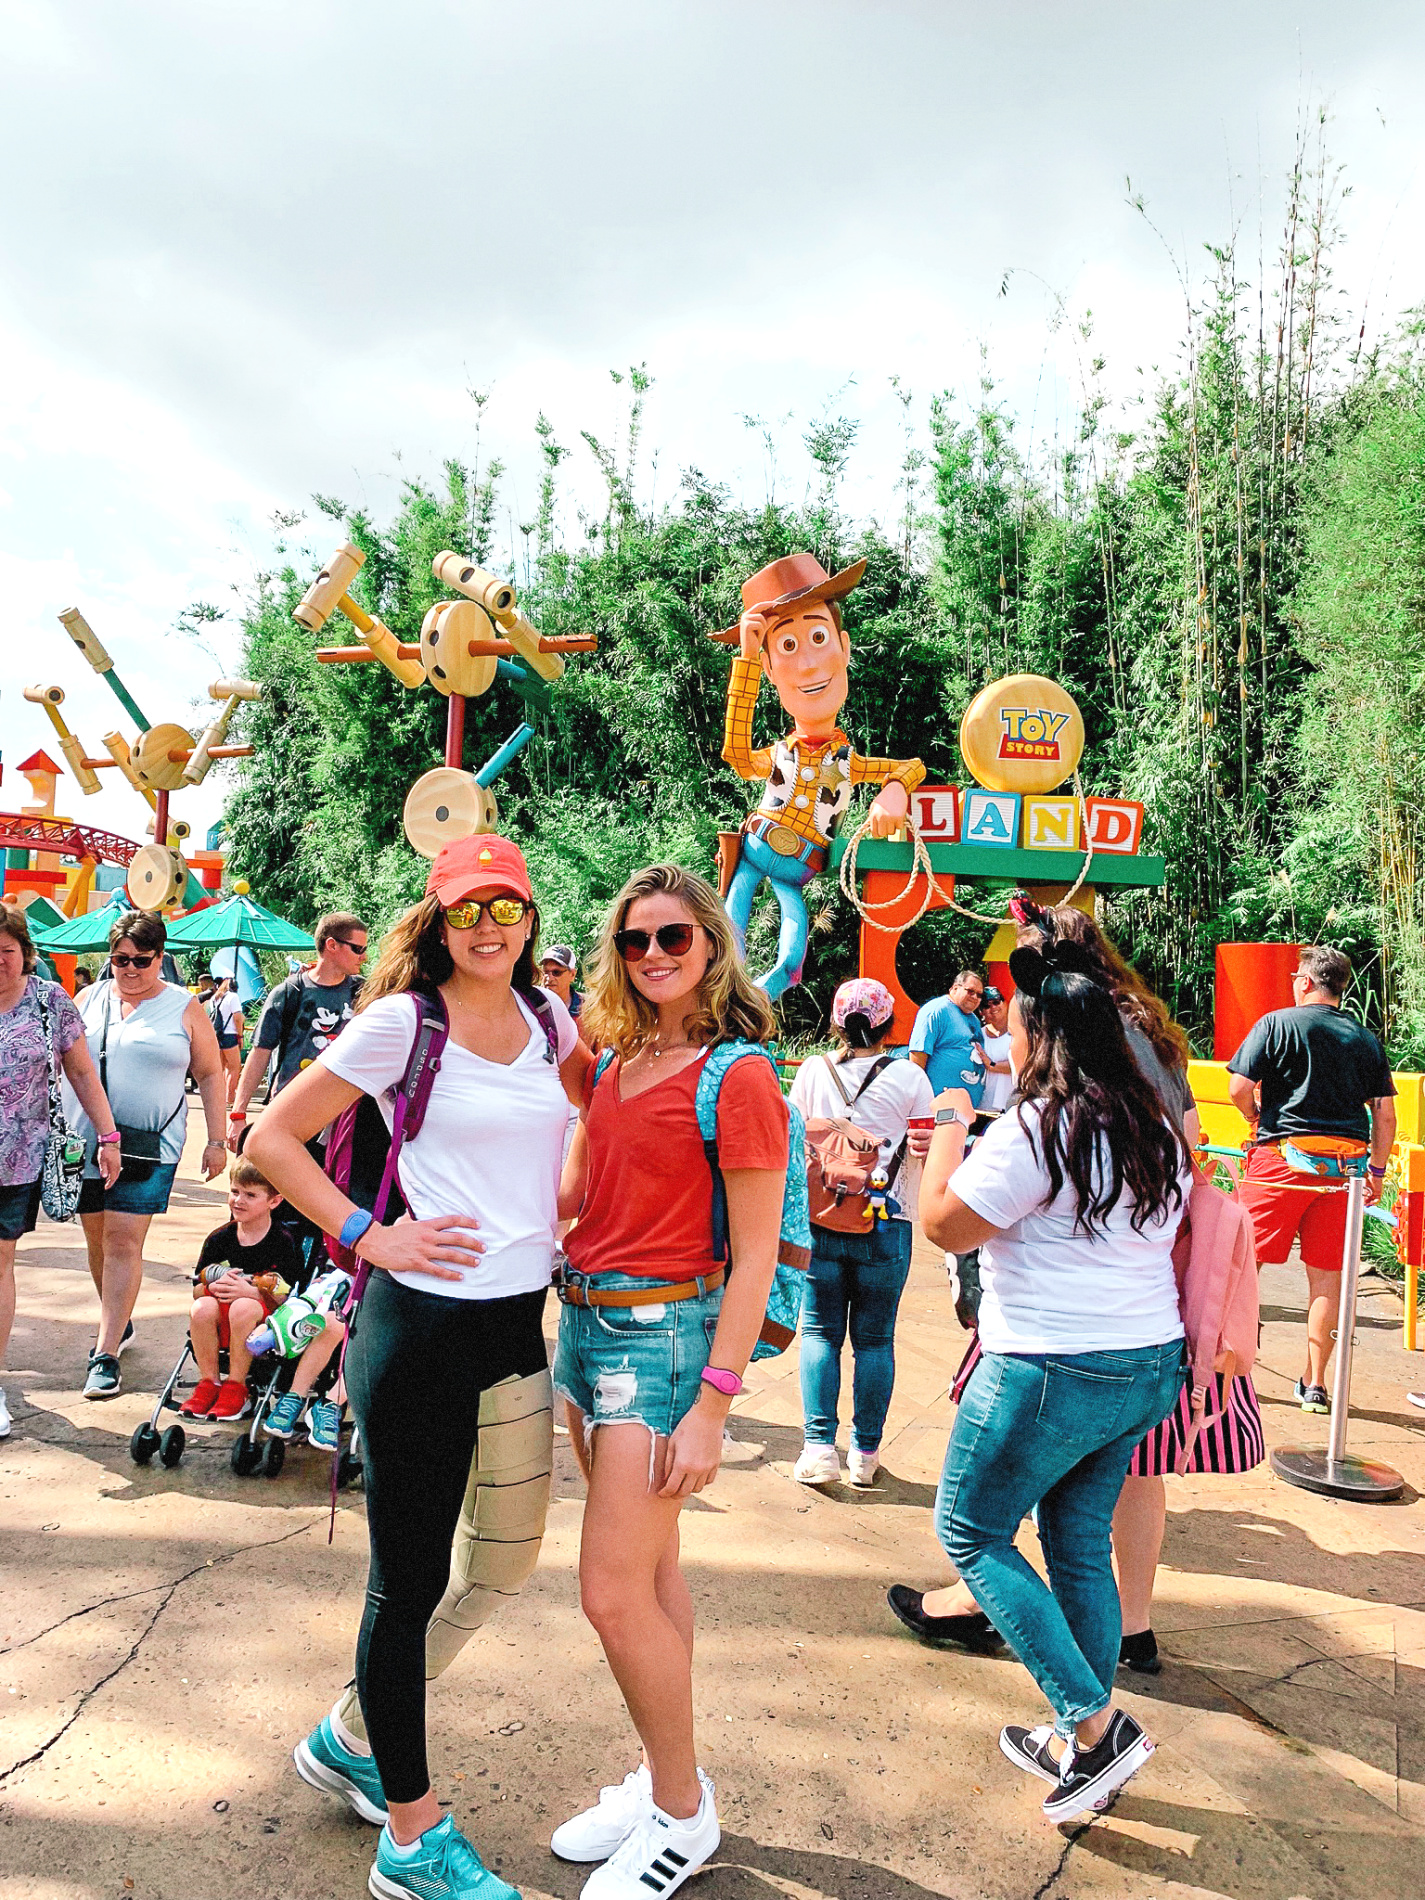 Toy story land Disney Walt Disney World Itinerary Hollywood Studios